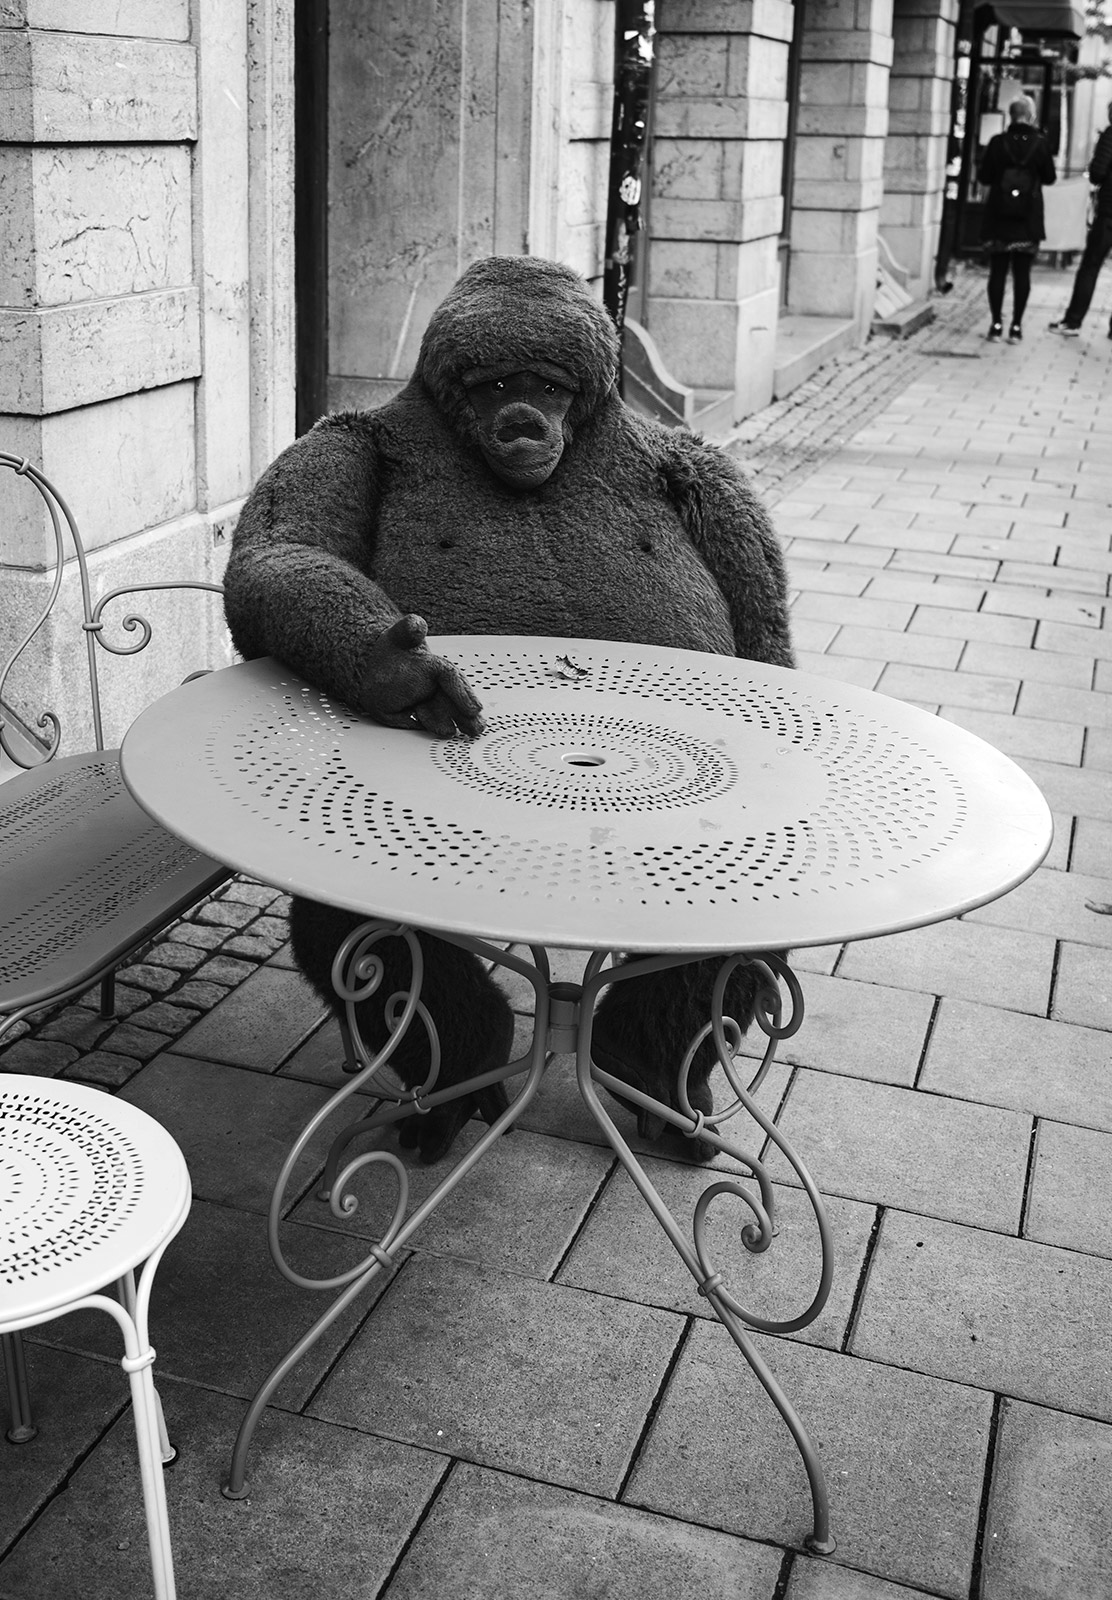 Gorilla sitting at table